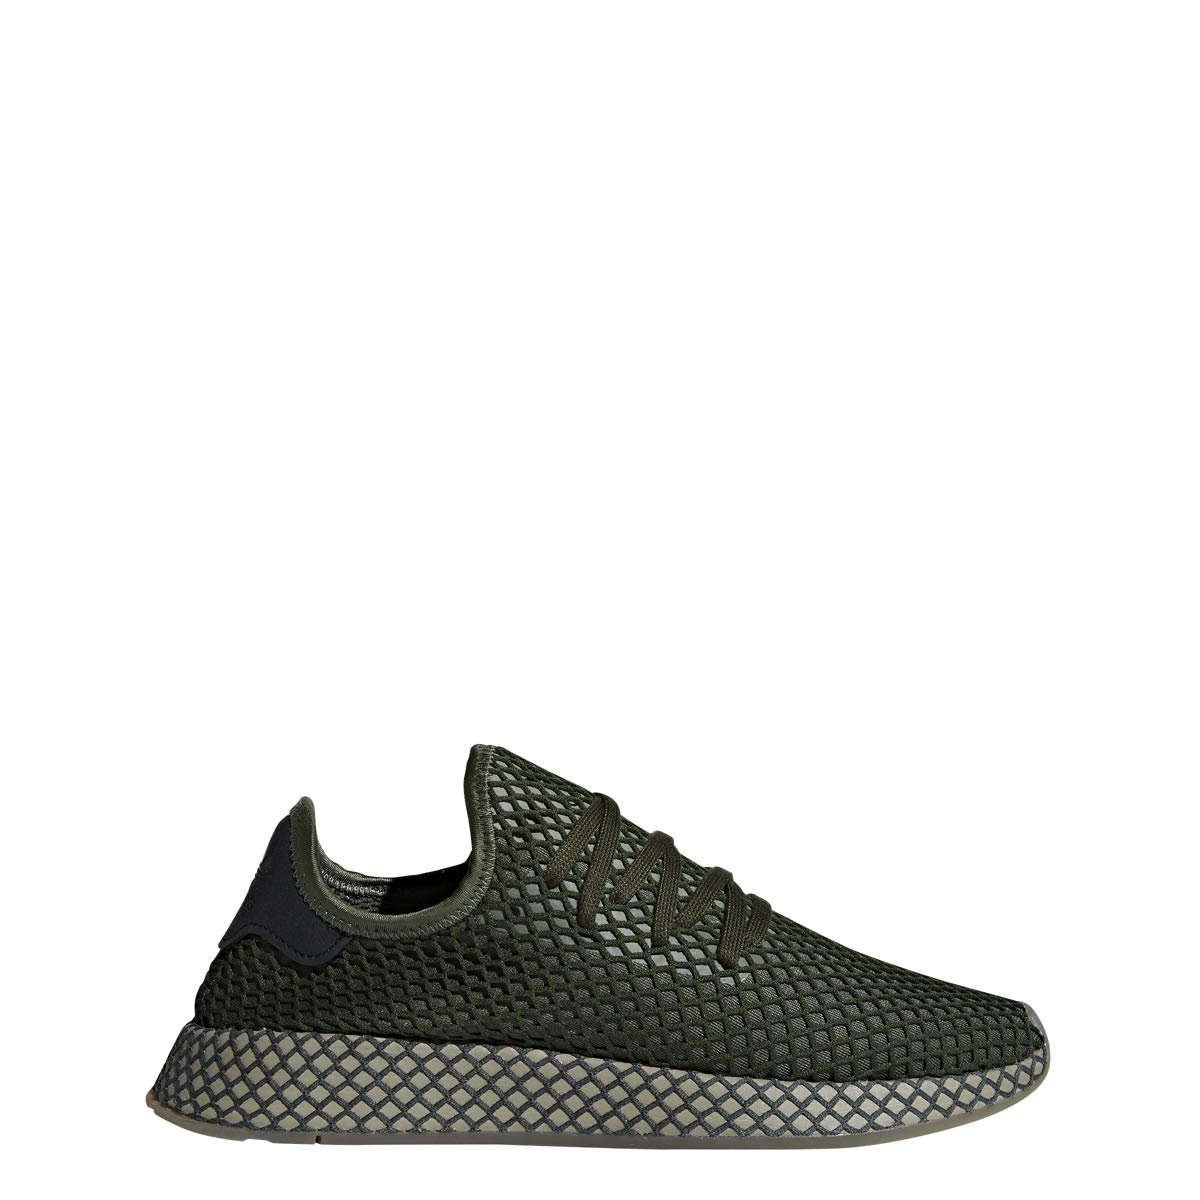 adidas Deerupt Runner Shoes White adidas Regional   adidas Regional          adidas Men's DEERUPT Runner GreenGreenOrange